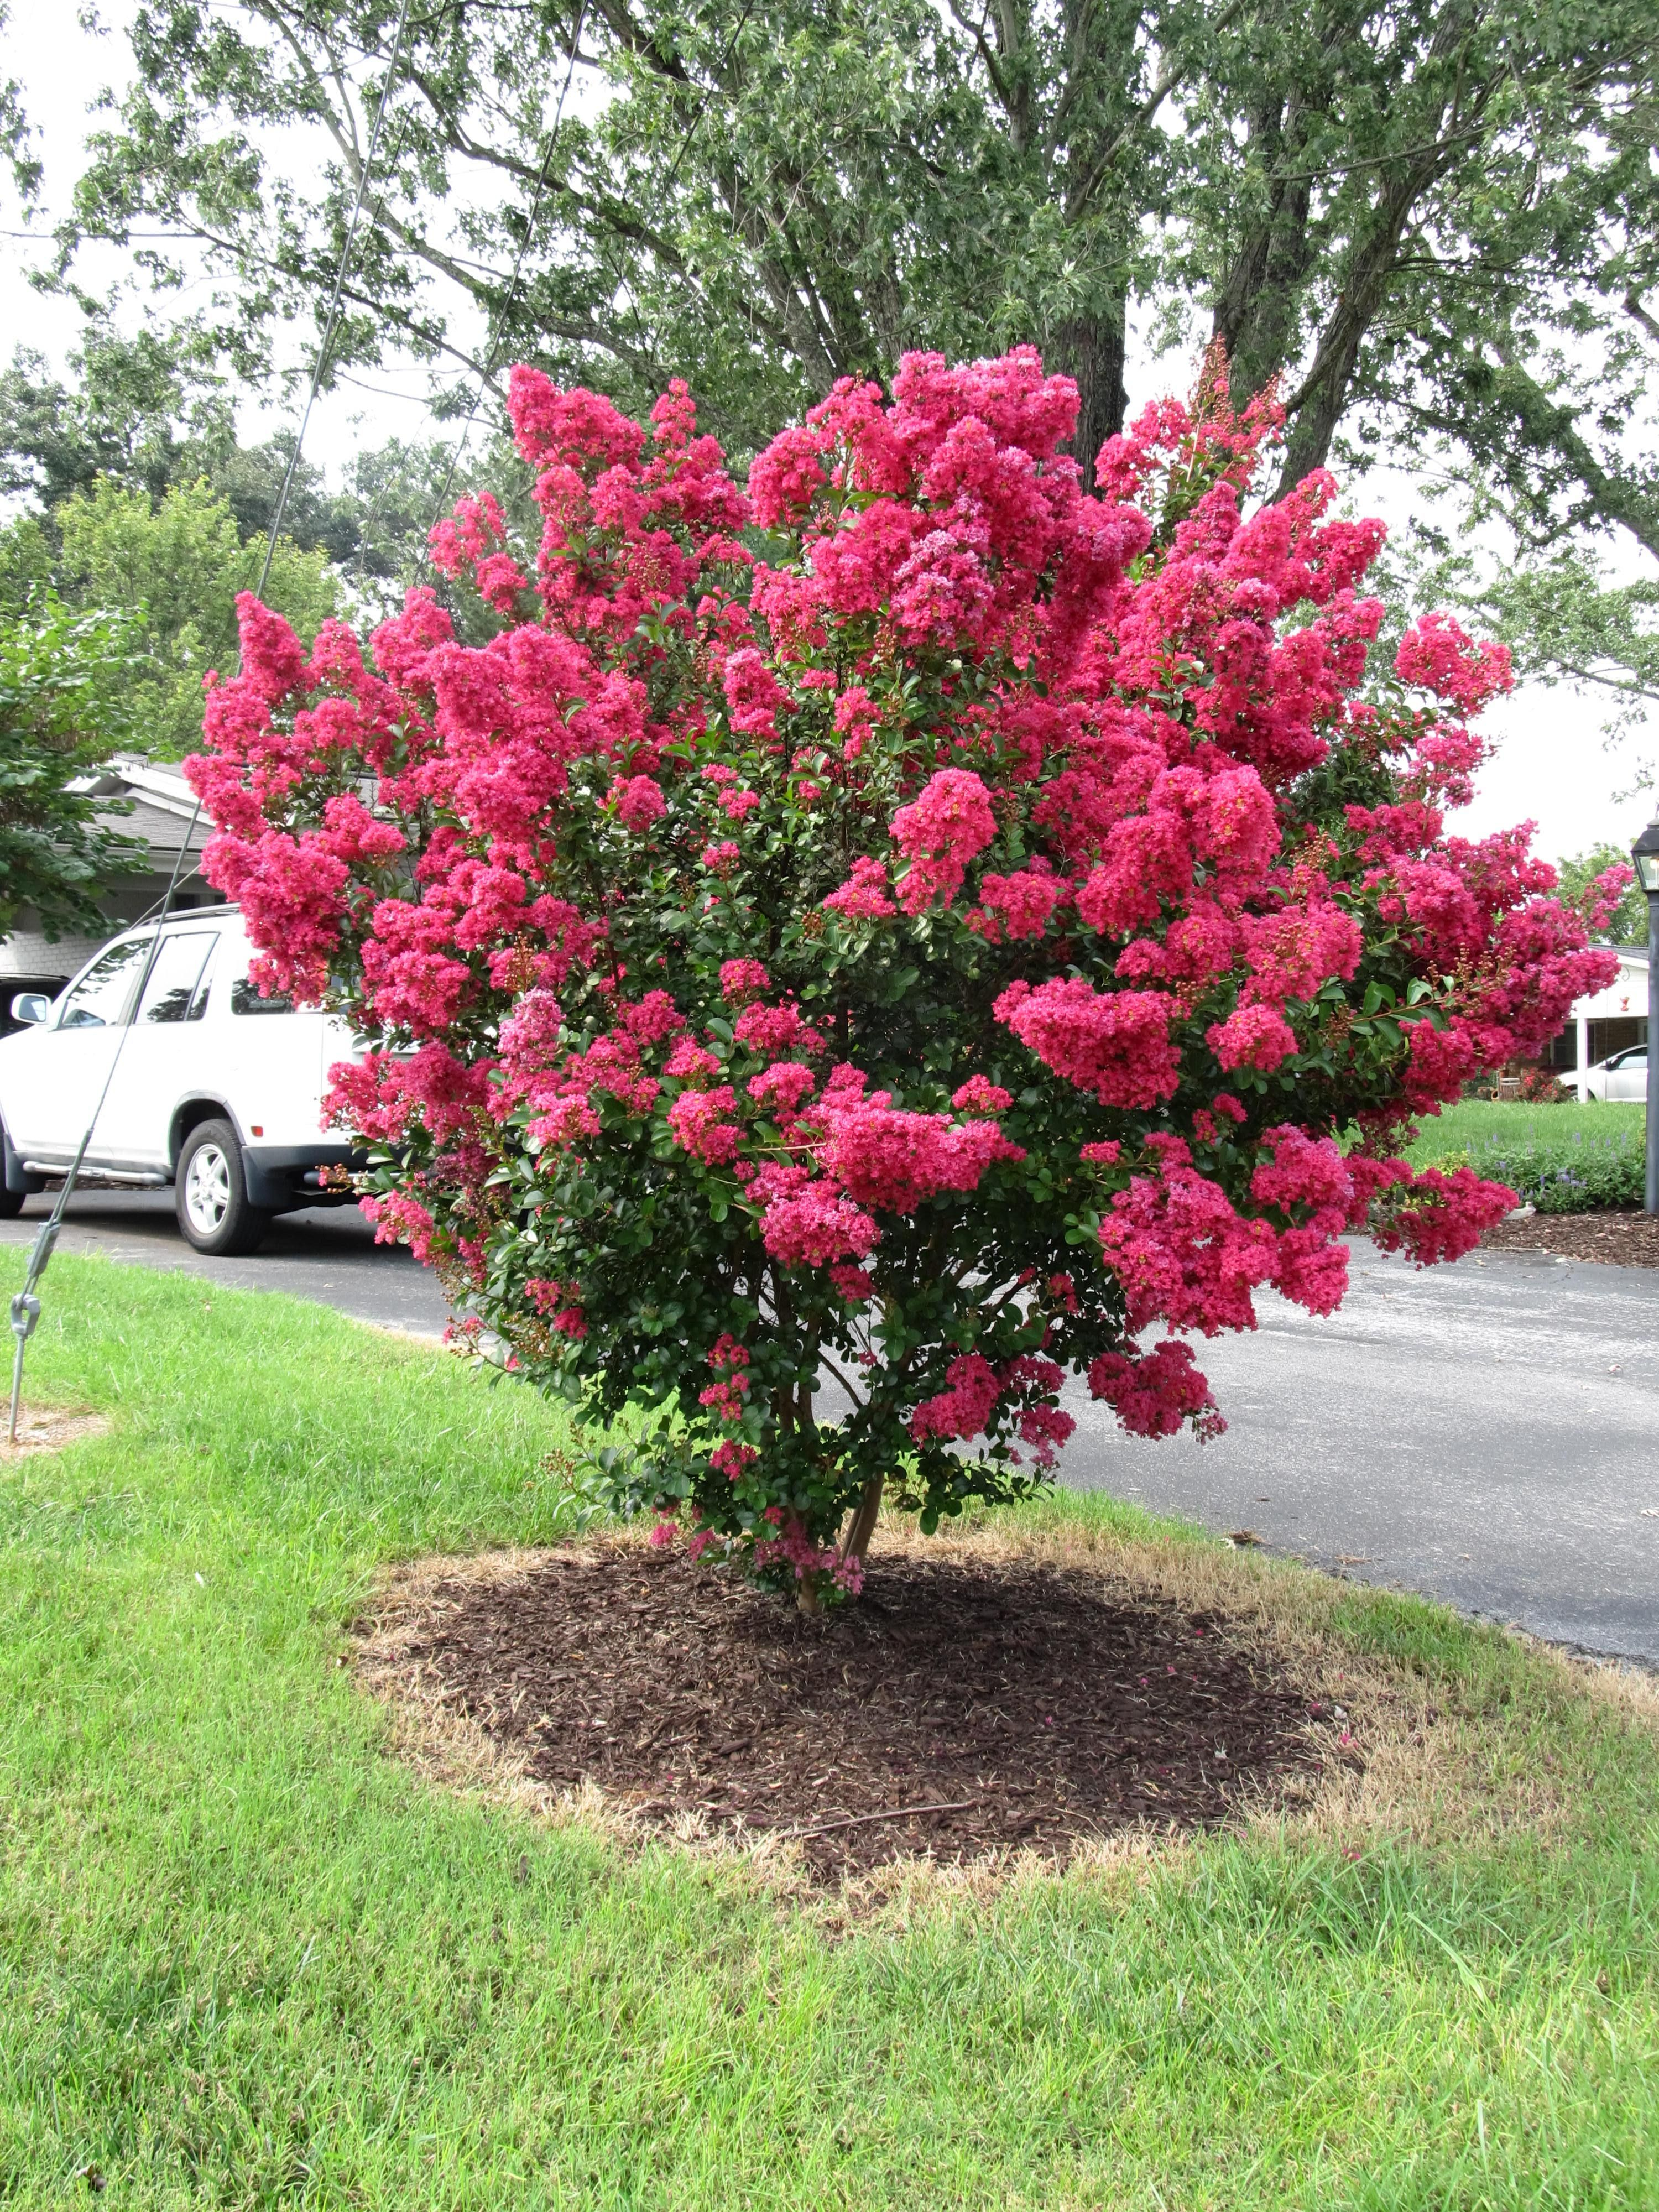 Dynamite Crape Myrtle Google Search Dwarf Flowering Trees Dwarf Trees For Landscaping Myrtle Tree